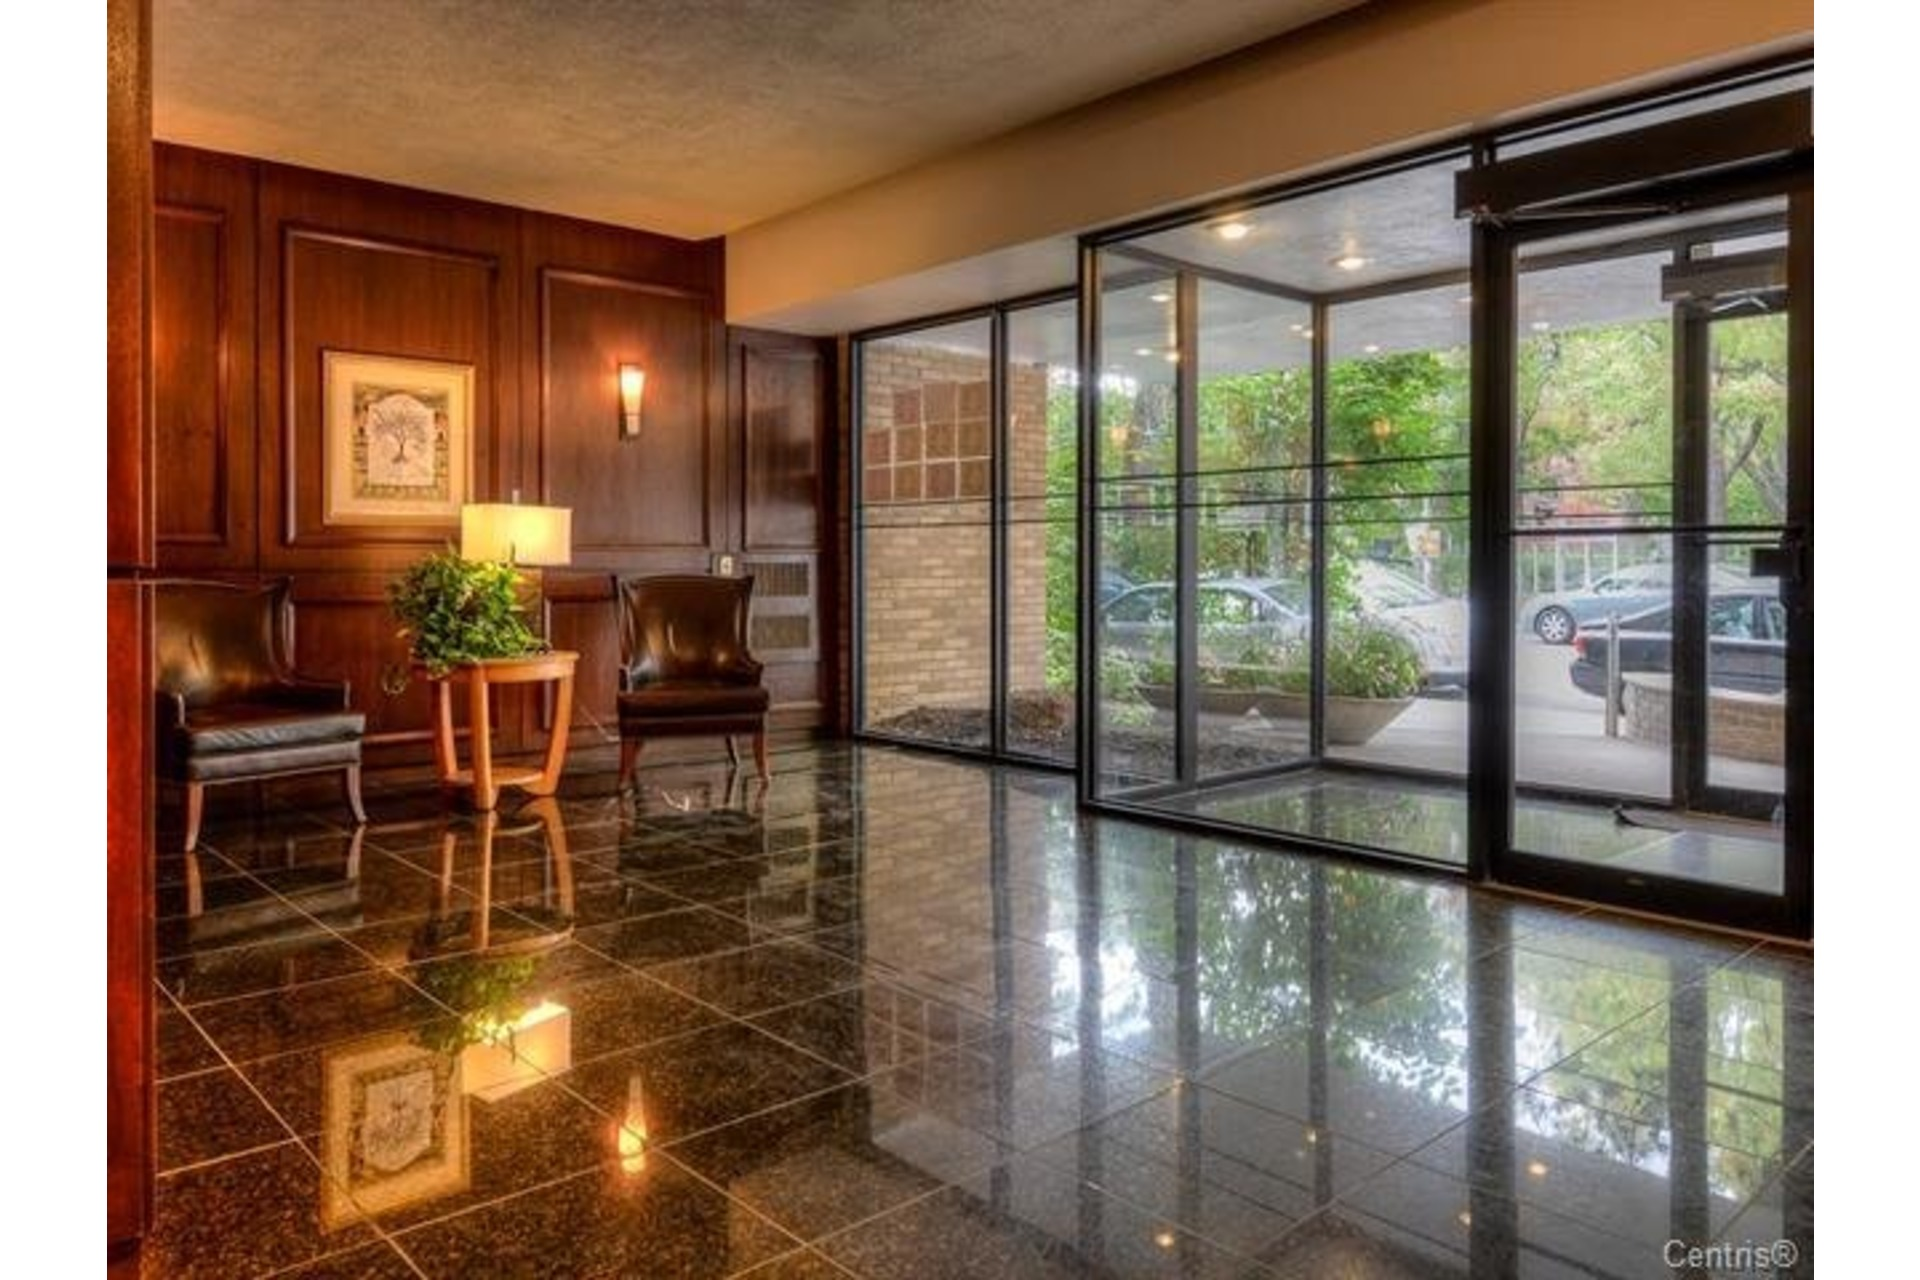 image 3 - Apartment For rent Westmount - 6 rooms